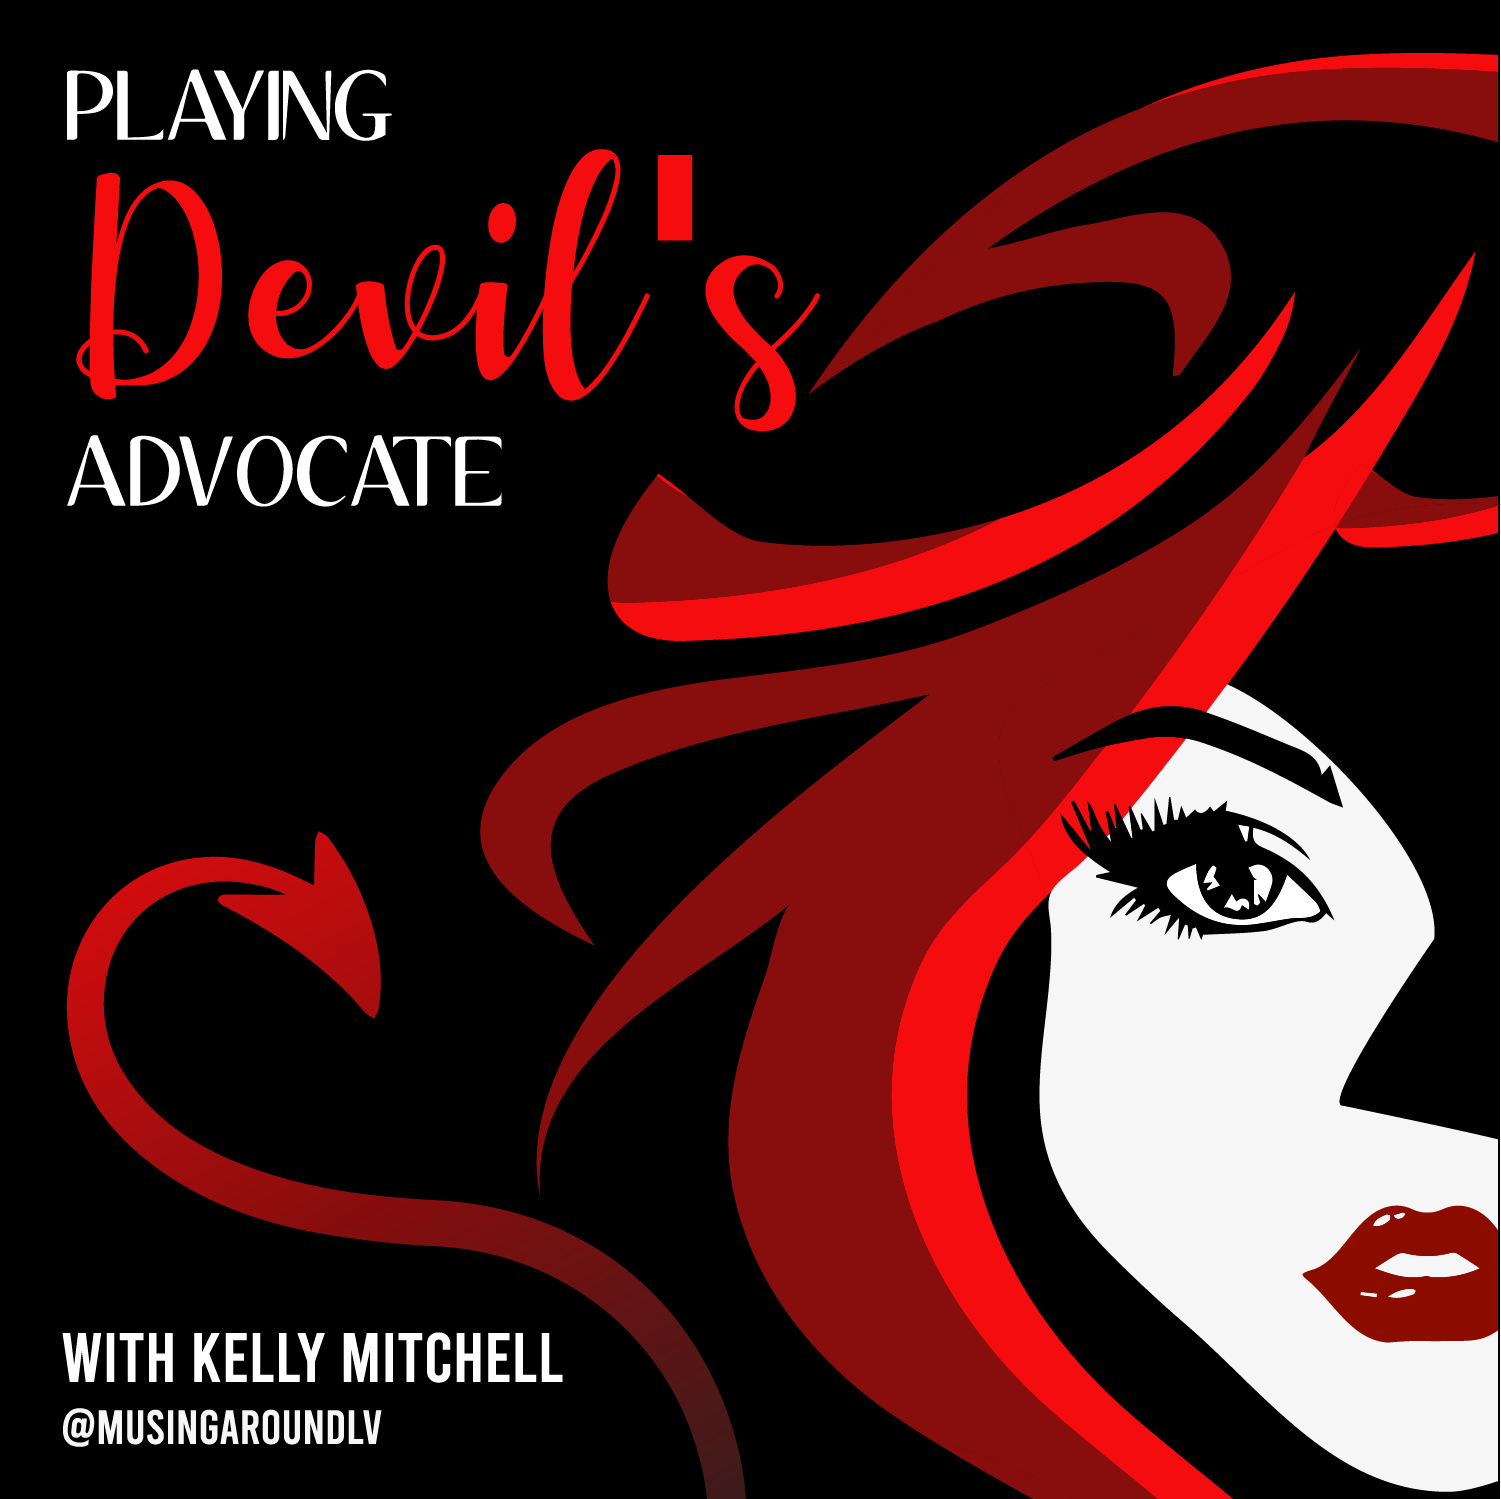 Playing Devils Advocate with Kelly Mitchell